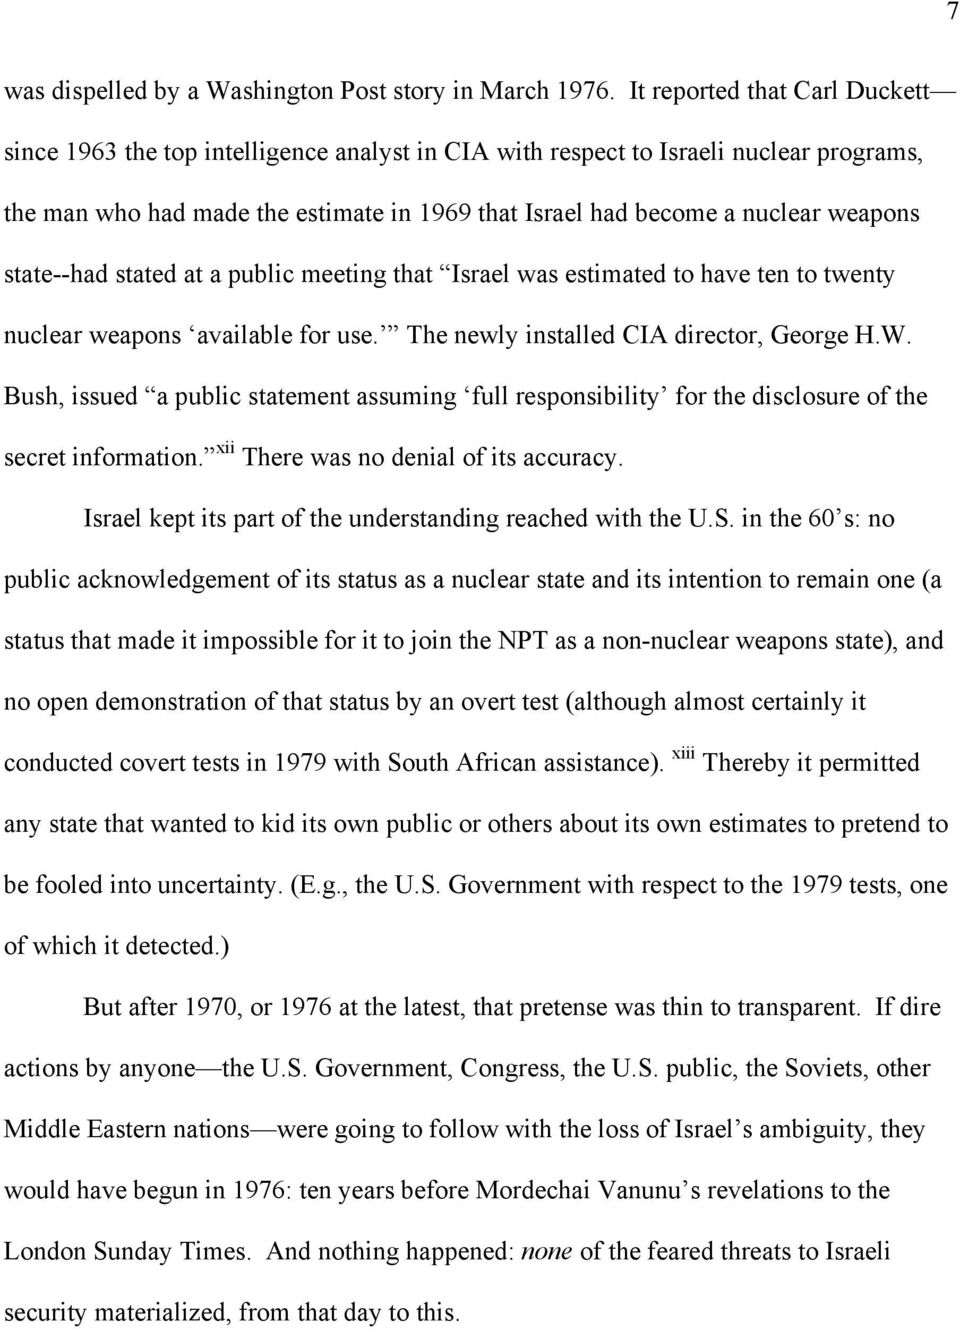 weapons state--had stated at a public meeting that Israel was estimated to have ten to twenty nuclear weapons available for use. The newly installed CIA director, George H.W.